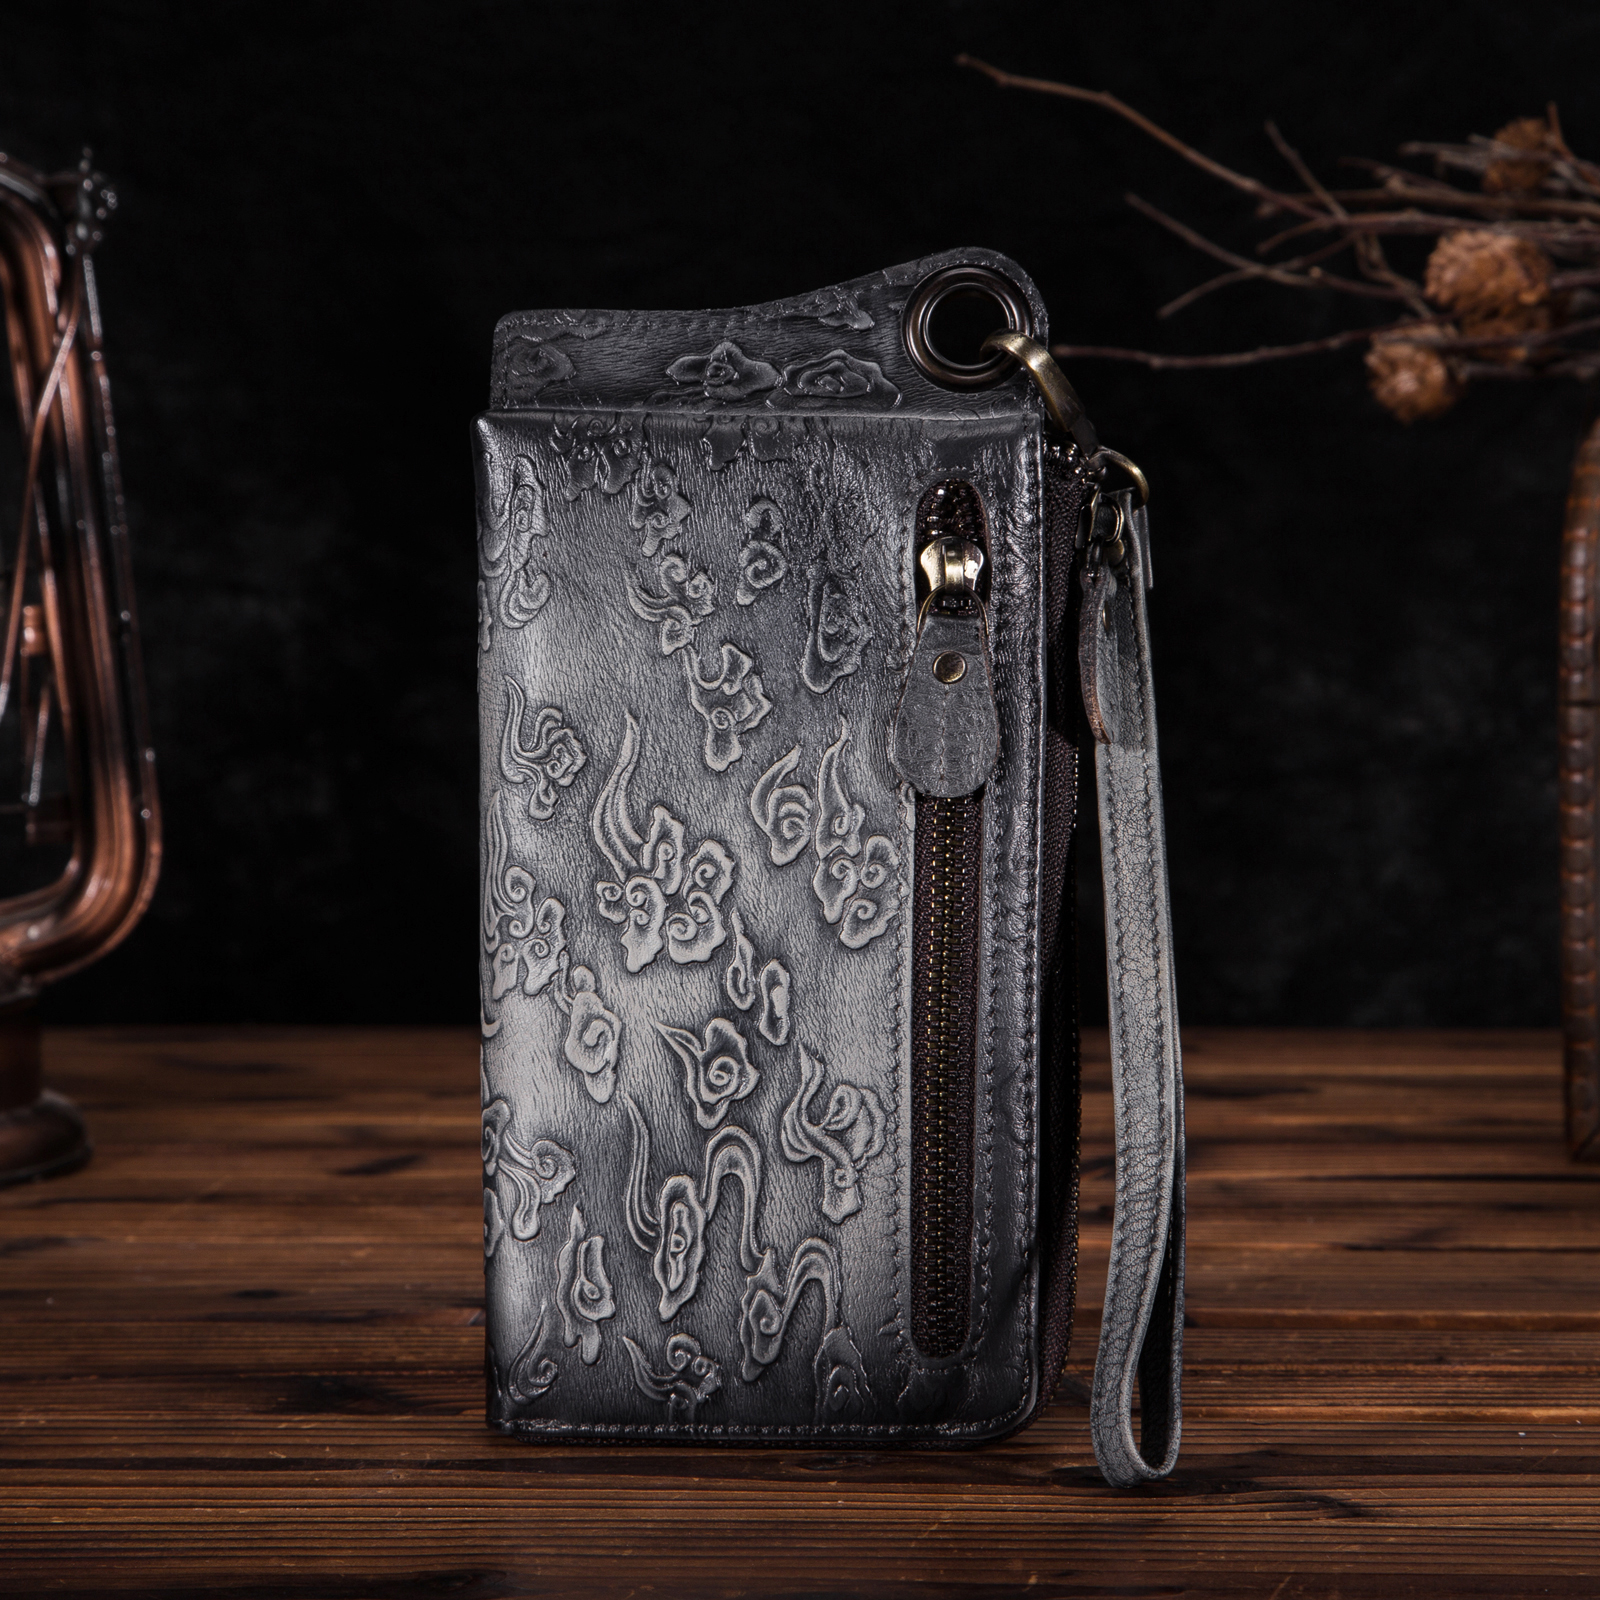 Cattle Men Design Organizer Wallet Real leather Male Fashion Business Credit Card Id Case Wallet Checkbook Purse Snap ck001 1 in Wallets from Luggage Bags